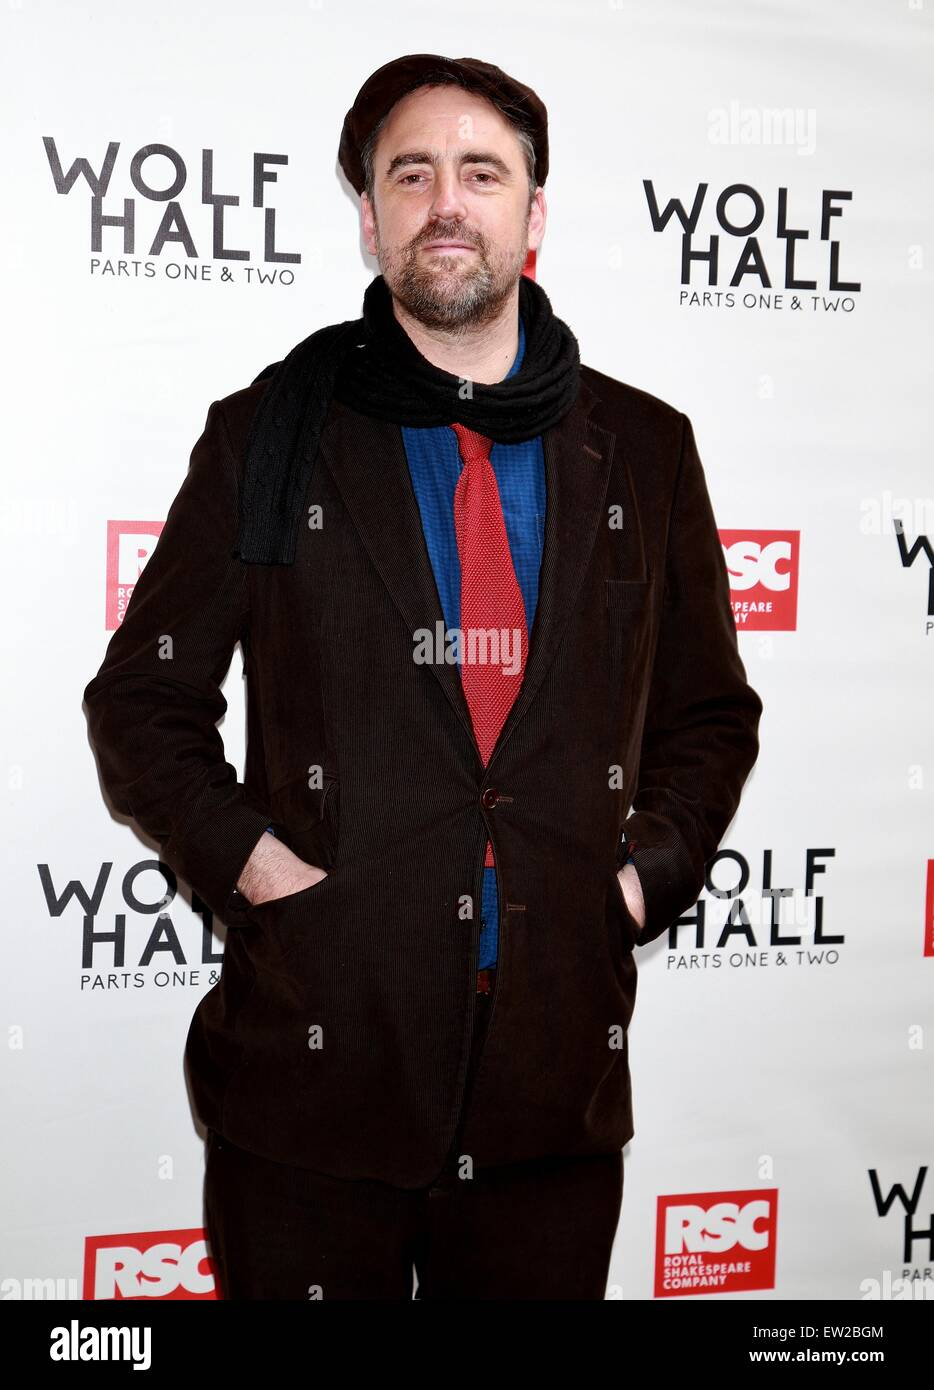 opening day for wolf hall part 1 and 2 at the winter garden